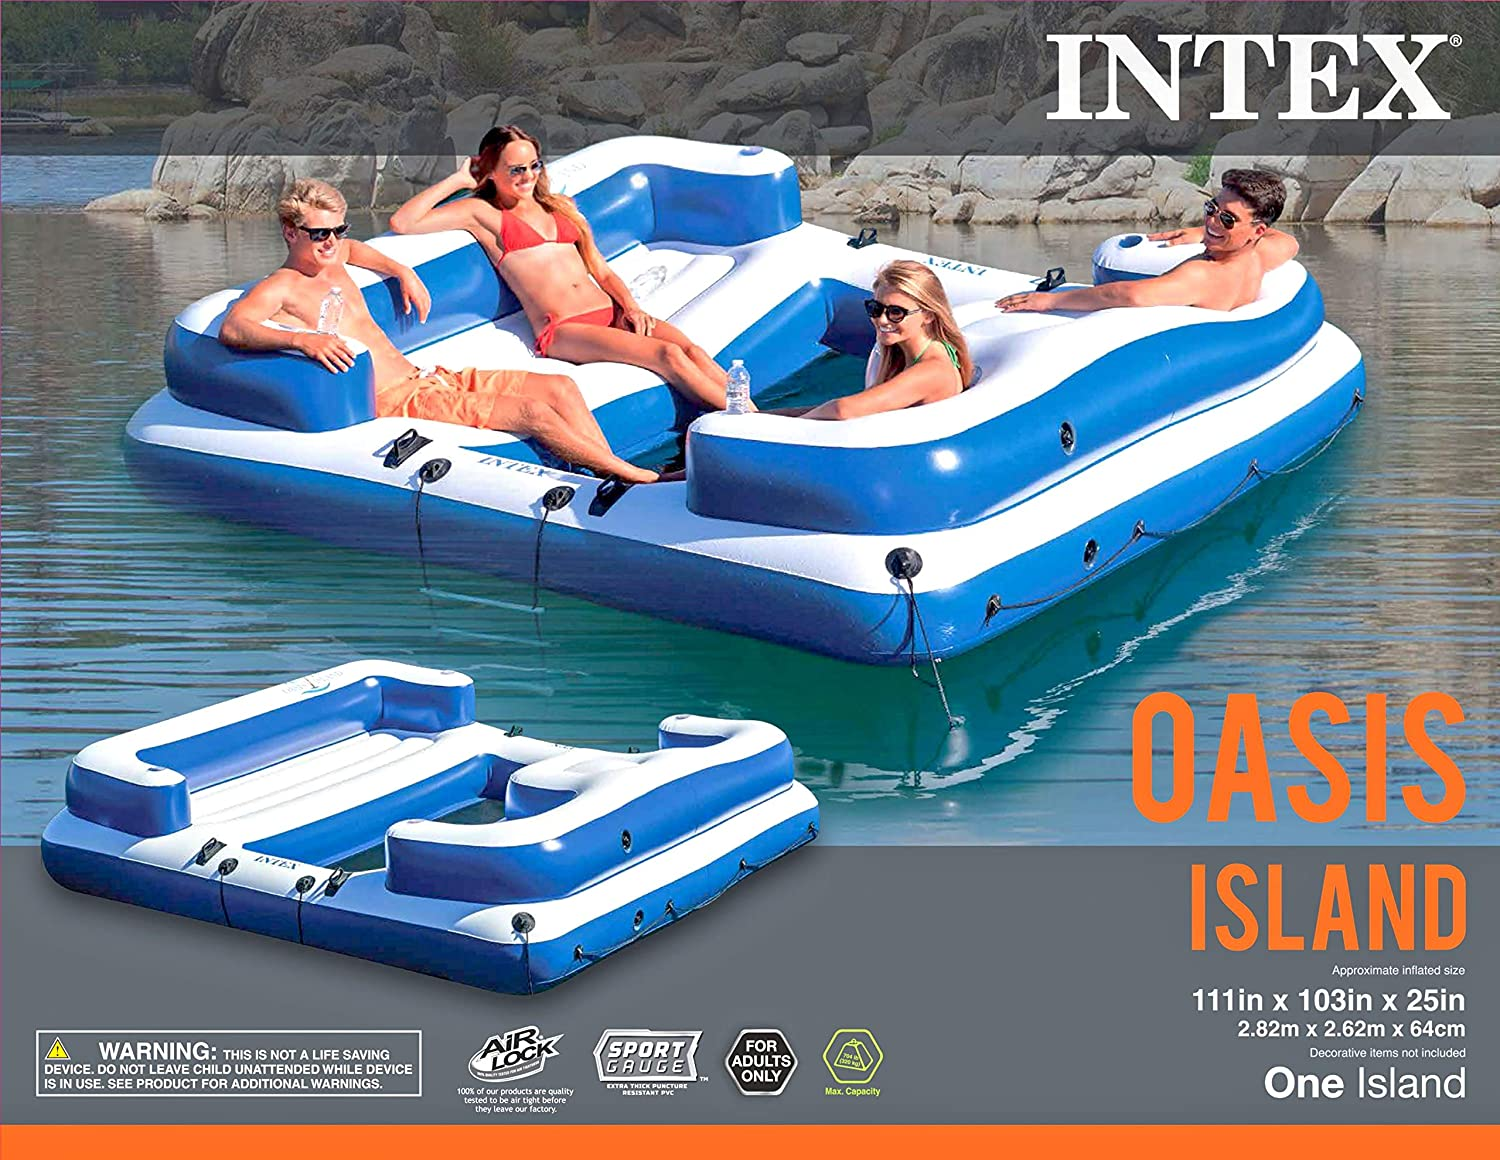 Amazon.com: Intex Oasis Isla, inflable flotante Agua Lounge ...